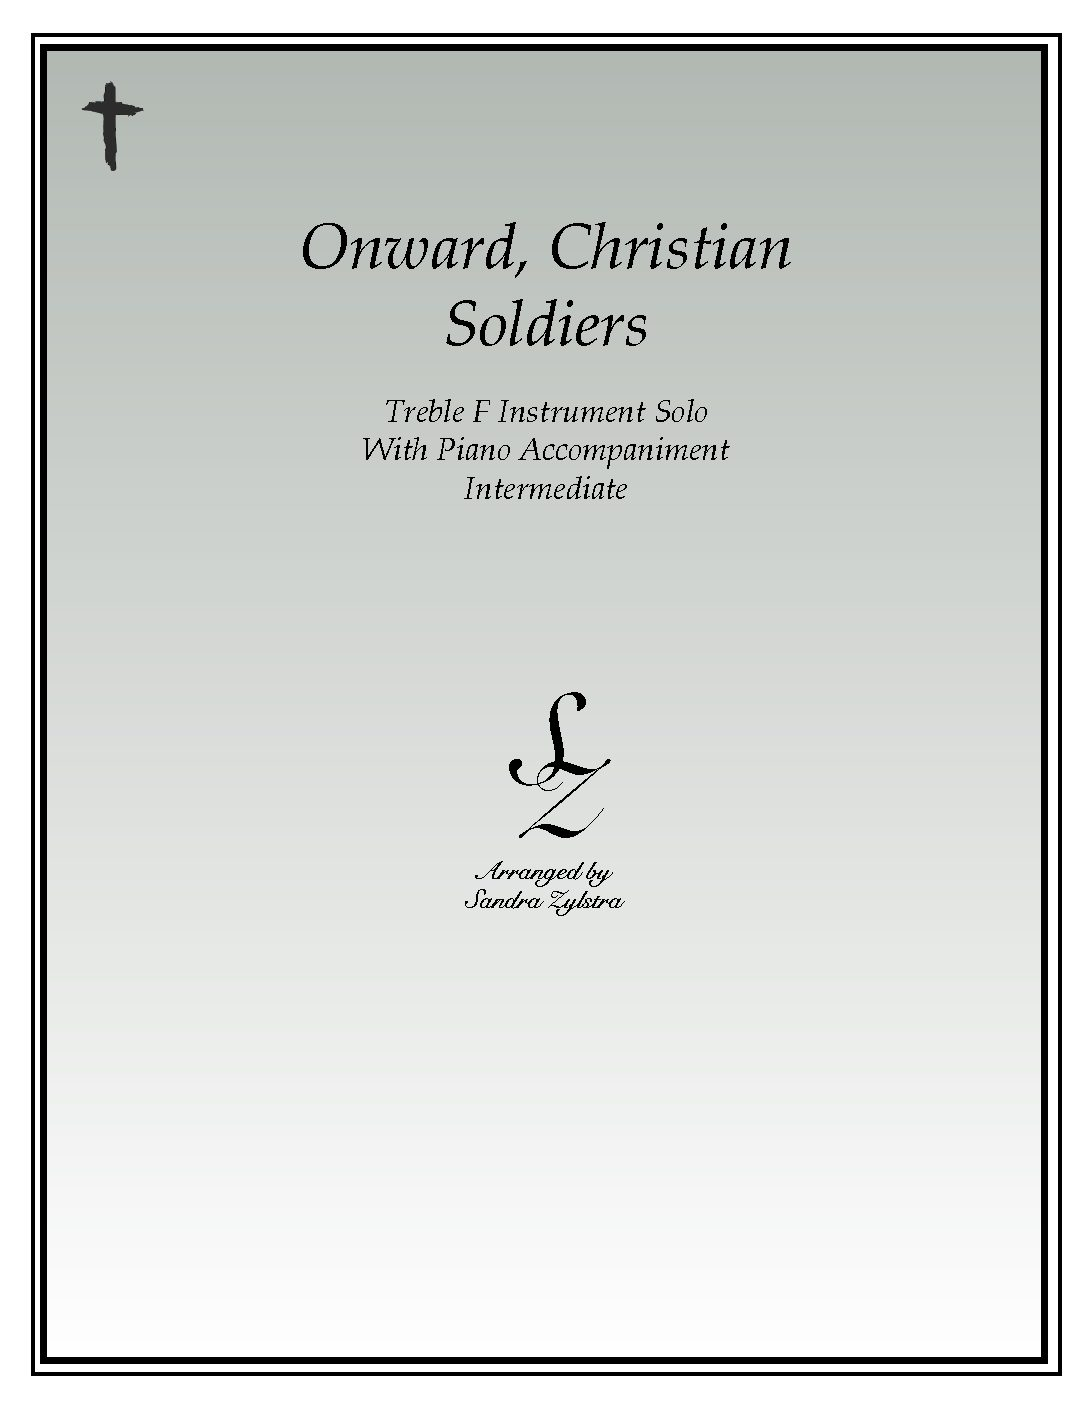 Onward, Christian Soldiers -Treble F Instrument Solo